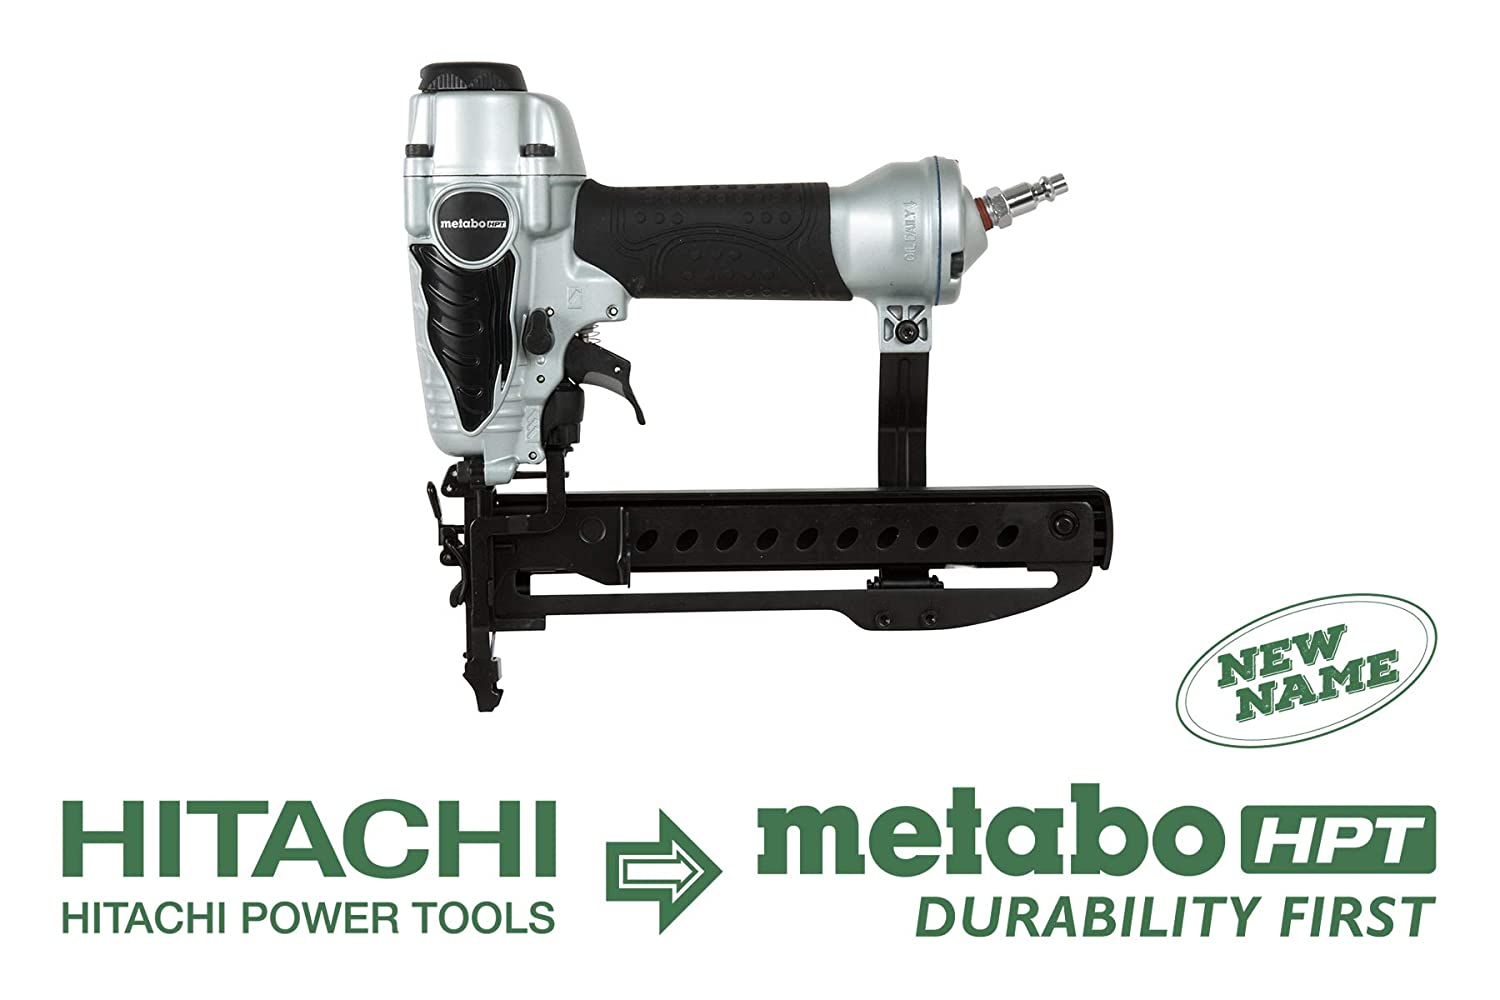 Metabo HPT N3804AB3 Pneumatic 1/4-Inch Narrow Crown Stapler, 18 Gauge, 1/2-Inch up to 1-1/2-Inch Staples, Non-slip Elastomer Grip, Adjustable Exhaust, Lightweight and Well-balanced, 5-Year Warranty